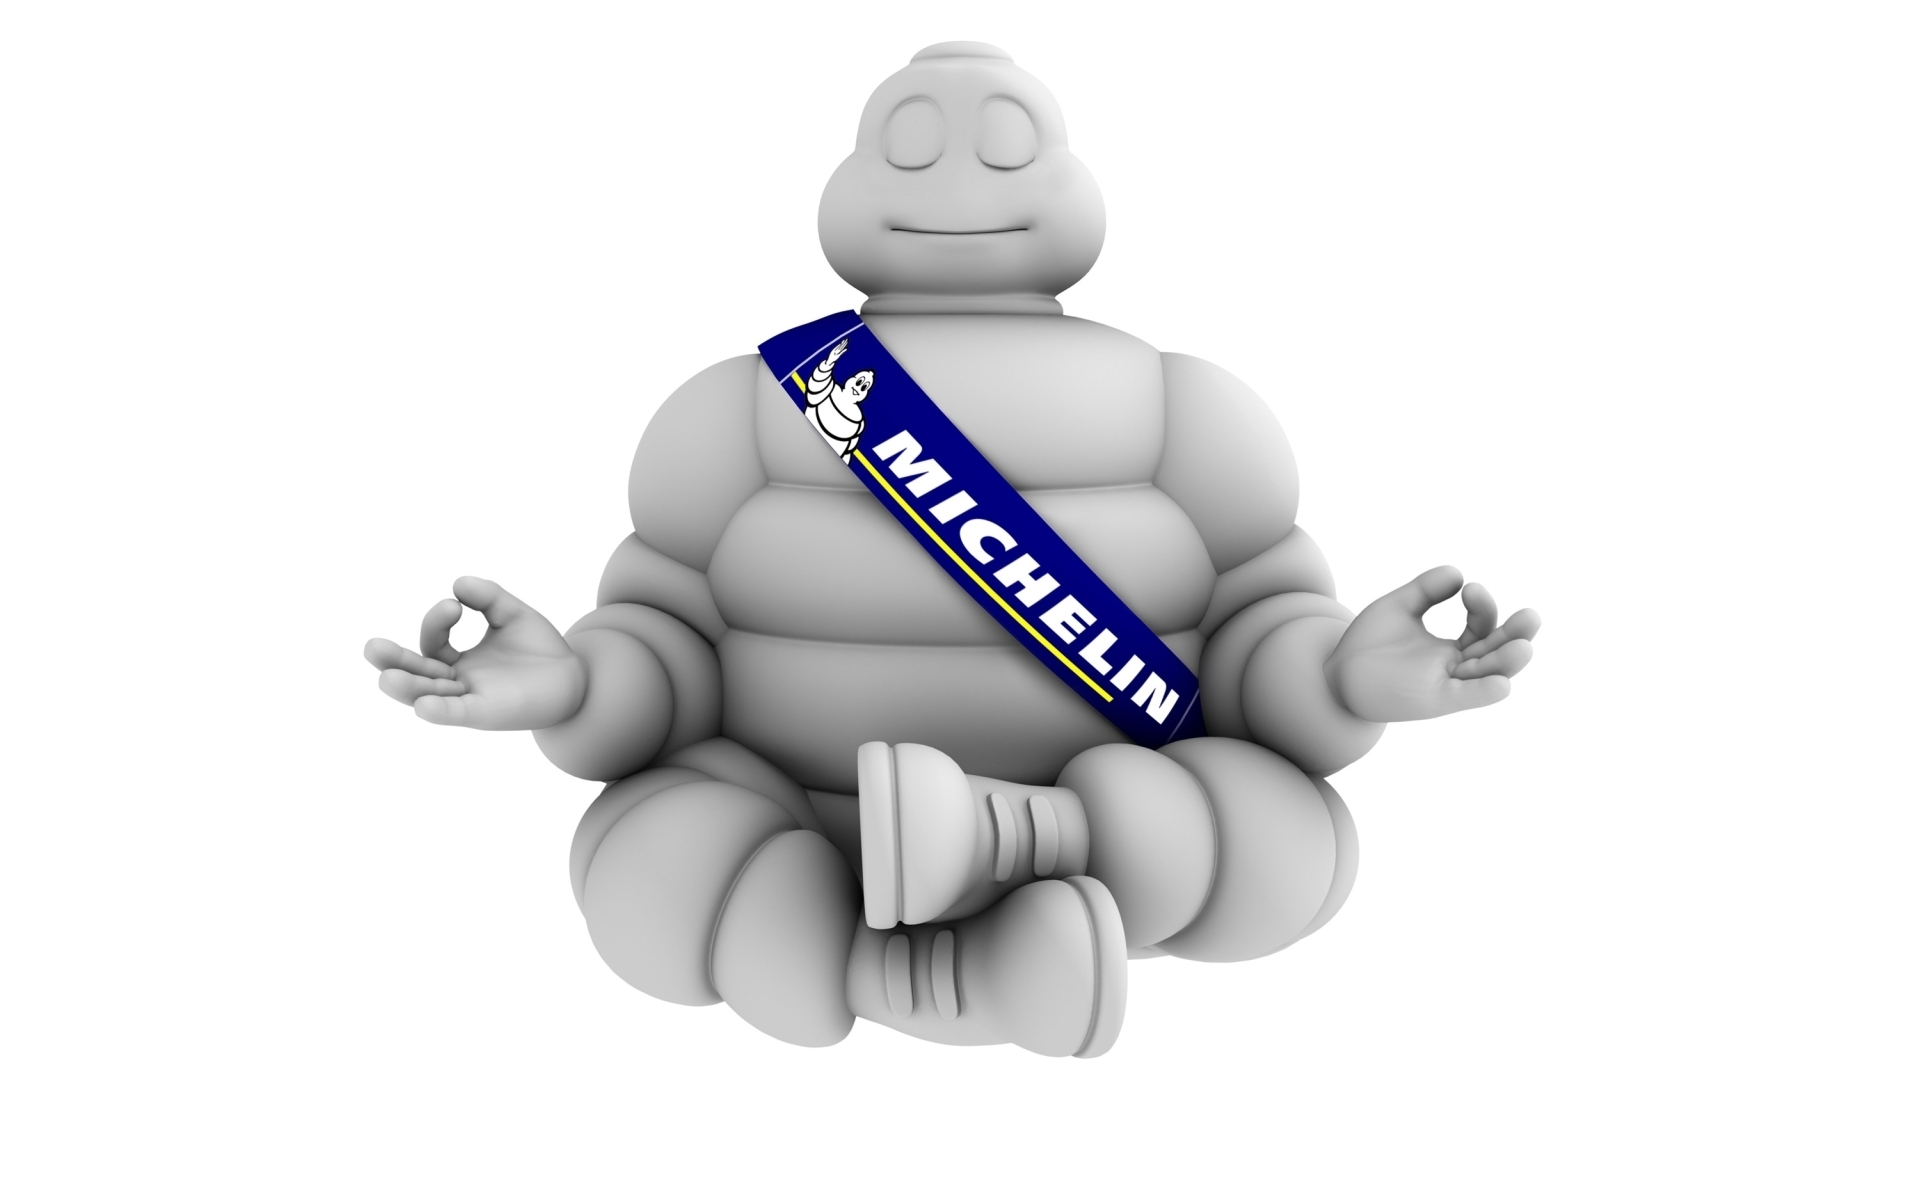 Best image of Michelin, image of Michelin tires, symbol | ImageBank ...